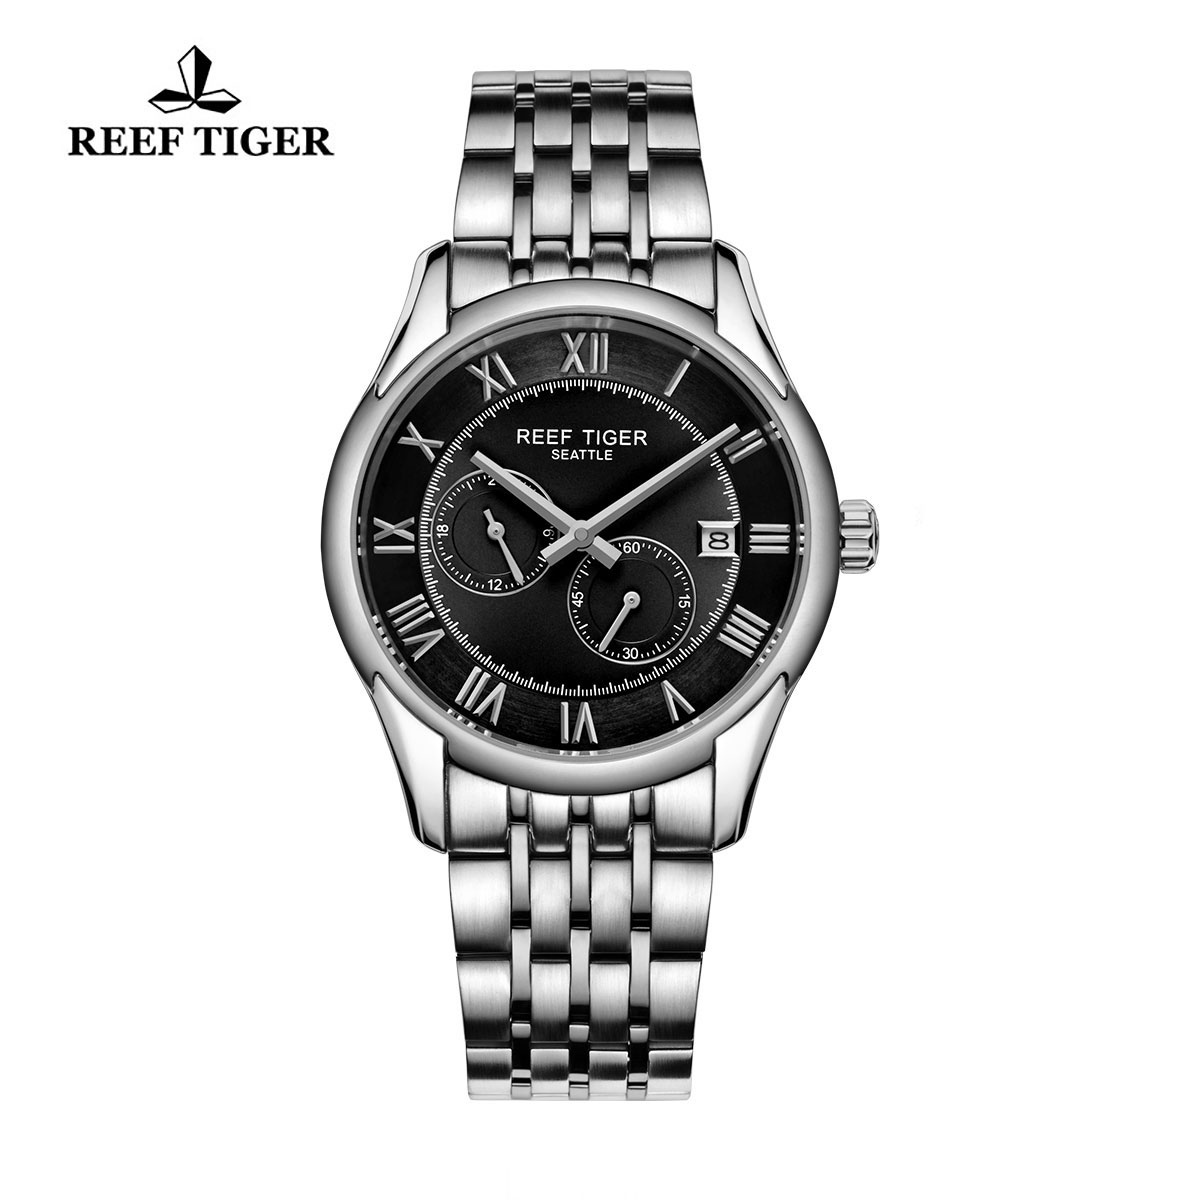 Reef Tiger Business Watch Stainless Steel Black Dial Automatic Watch RGA165-YBY